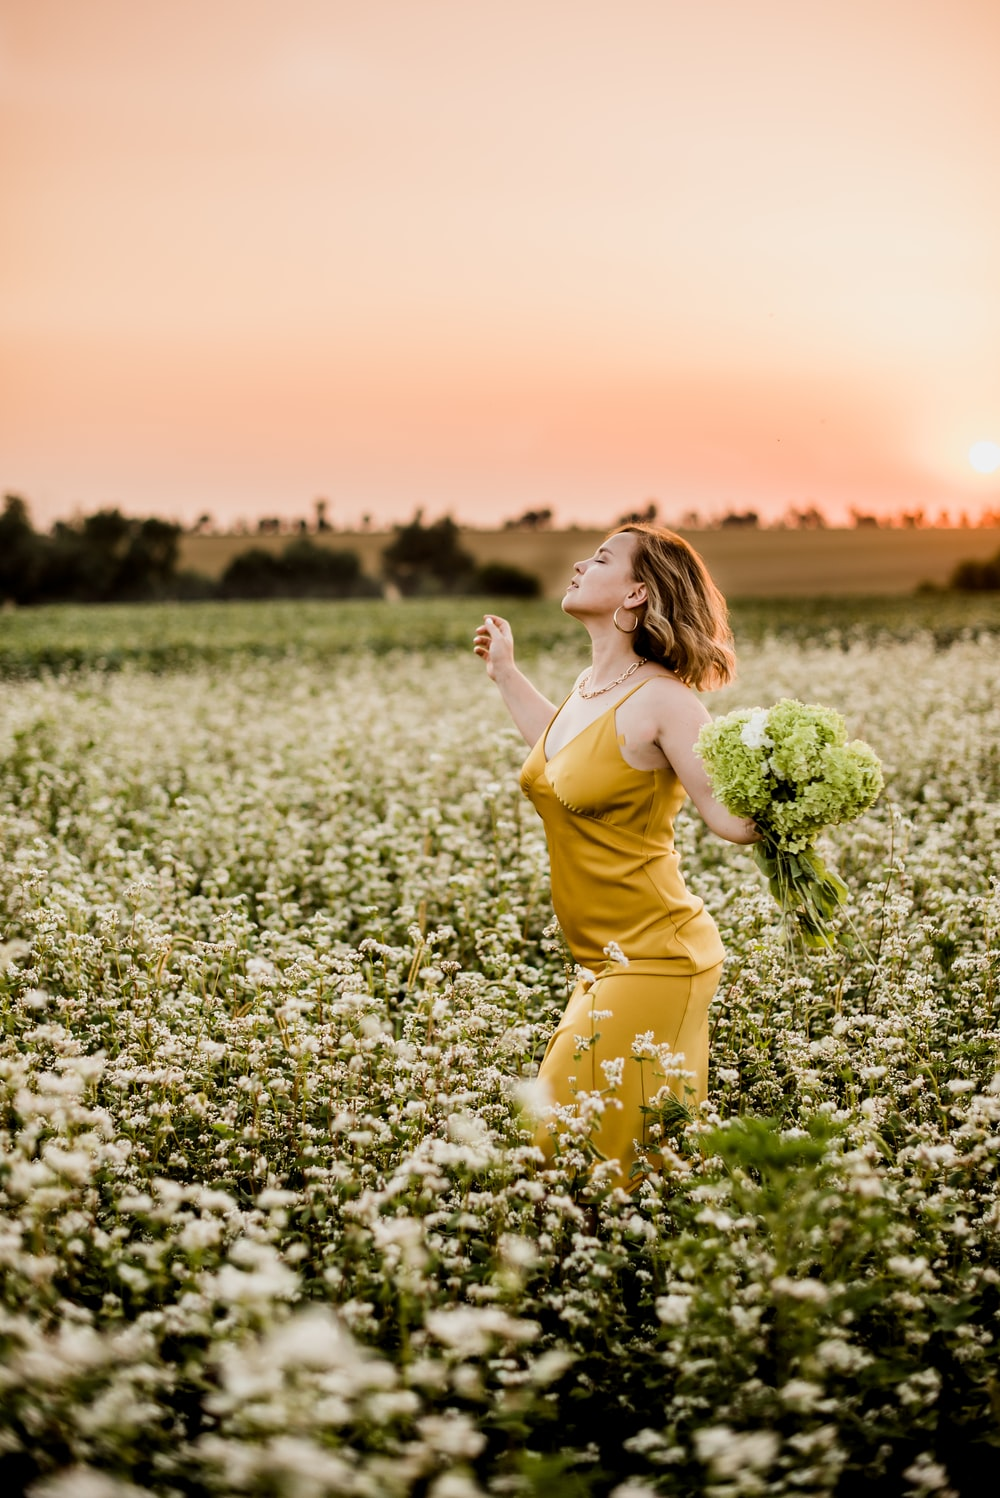 woman in yellow dress standing on flower field during daytime